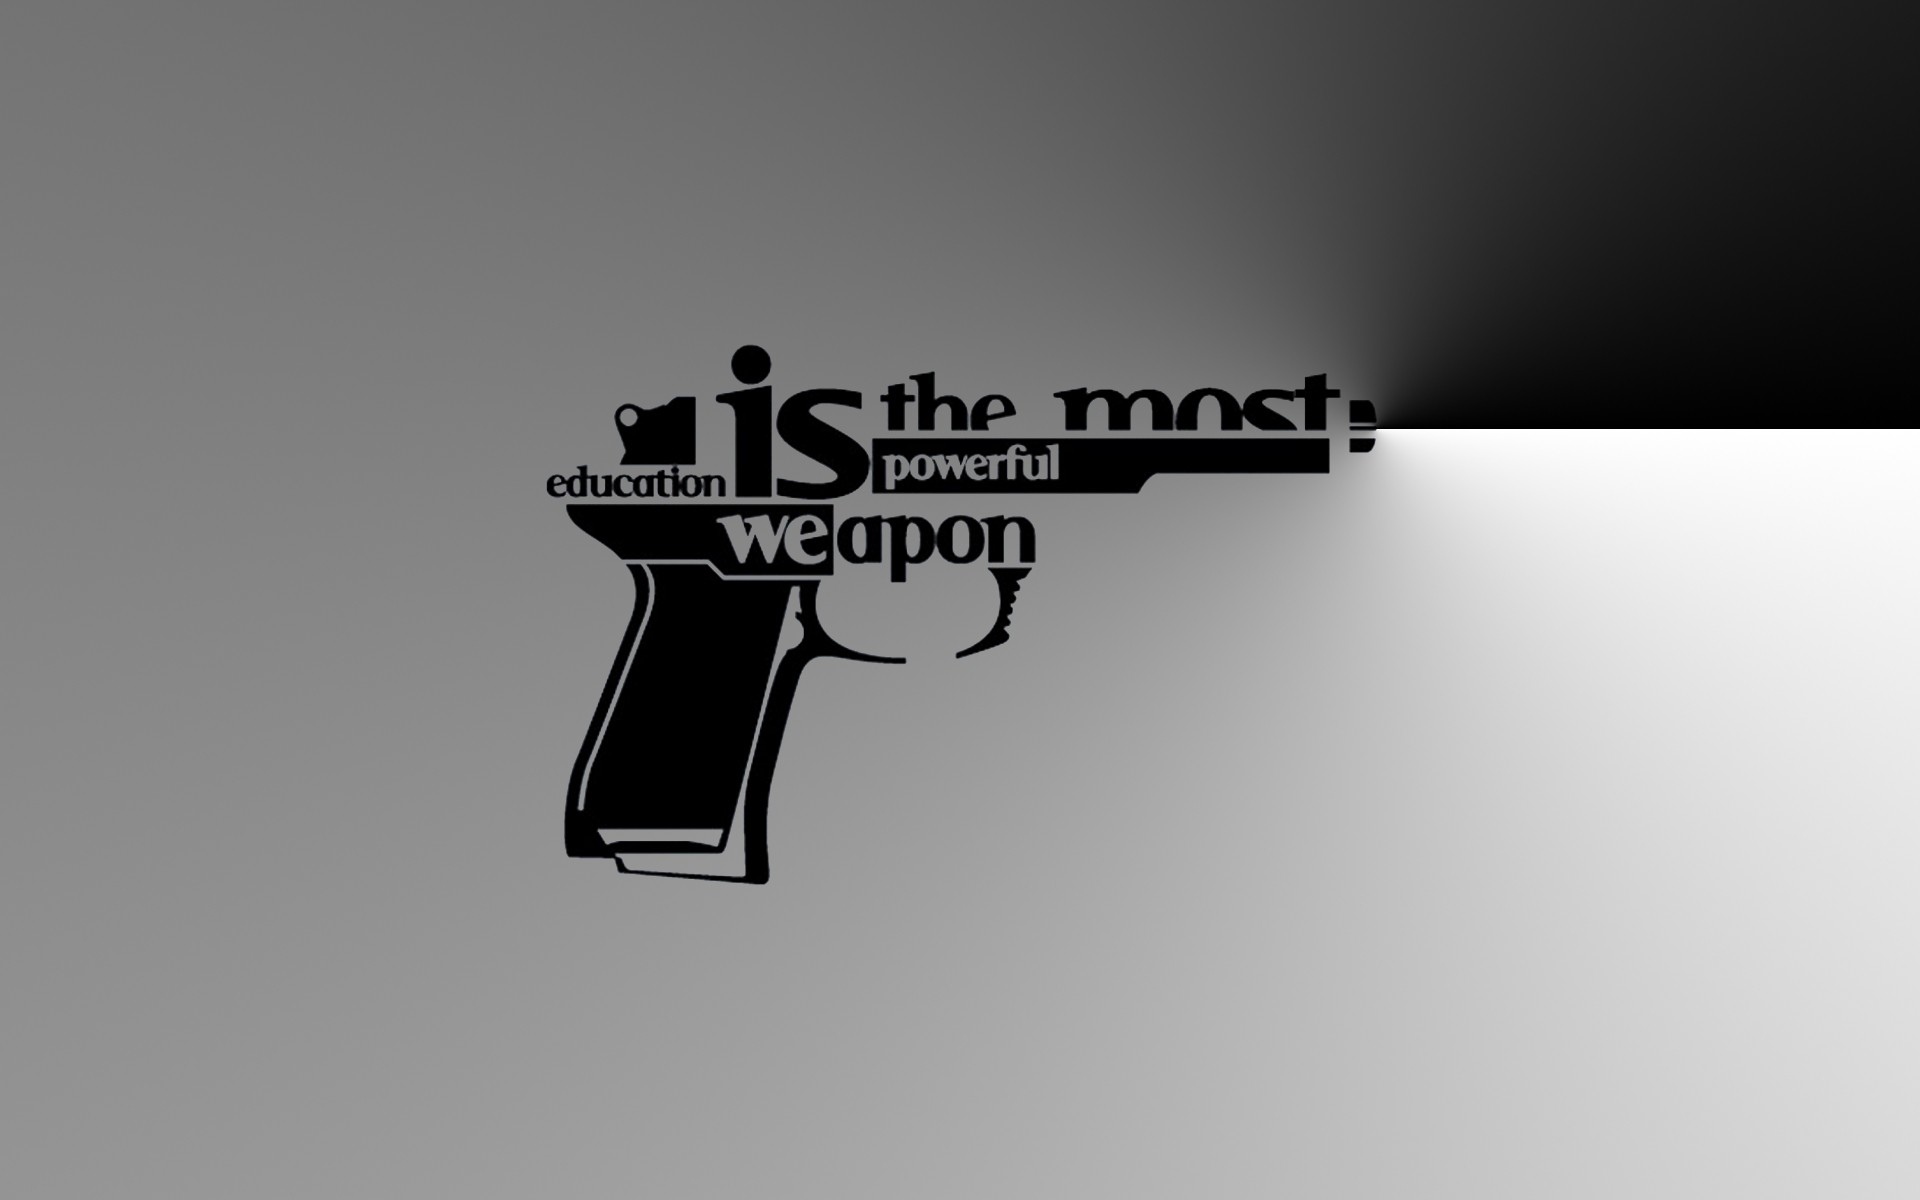 Hd wallpaper education - Weapons Typography Education Wallpaper 1920x1200 9203 Wallpaperup